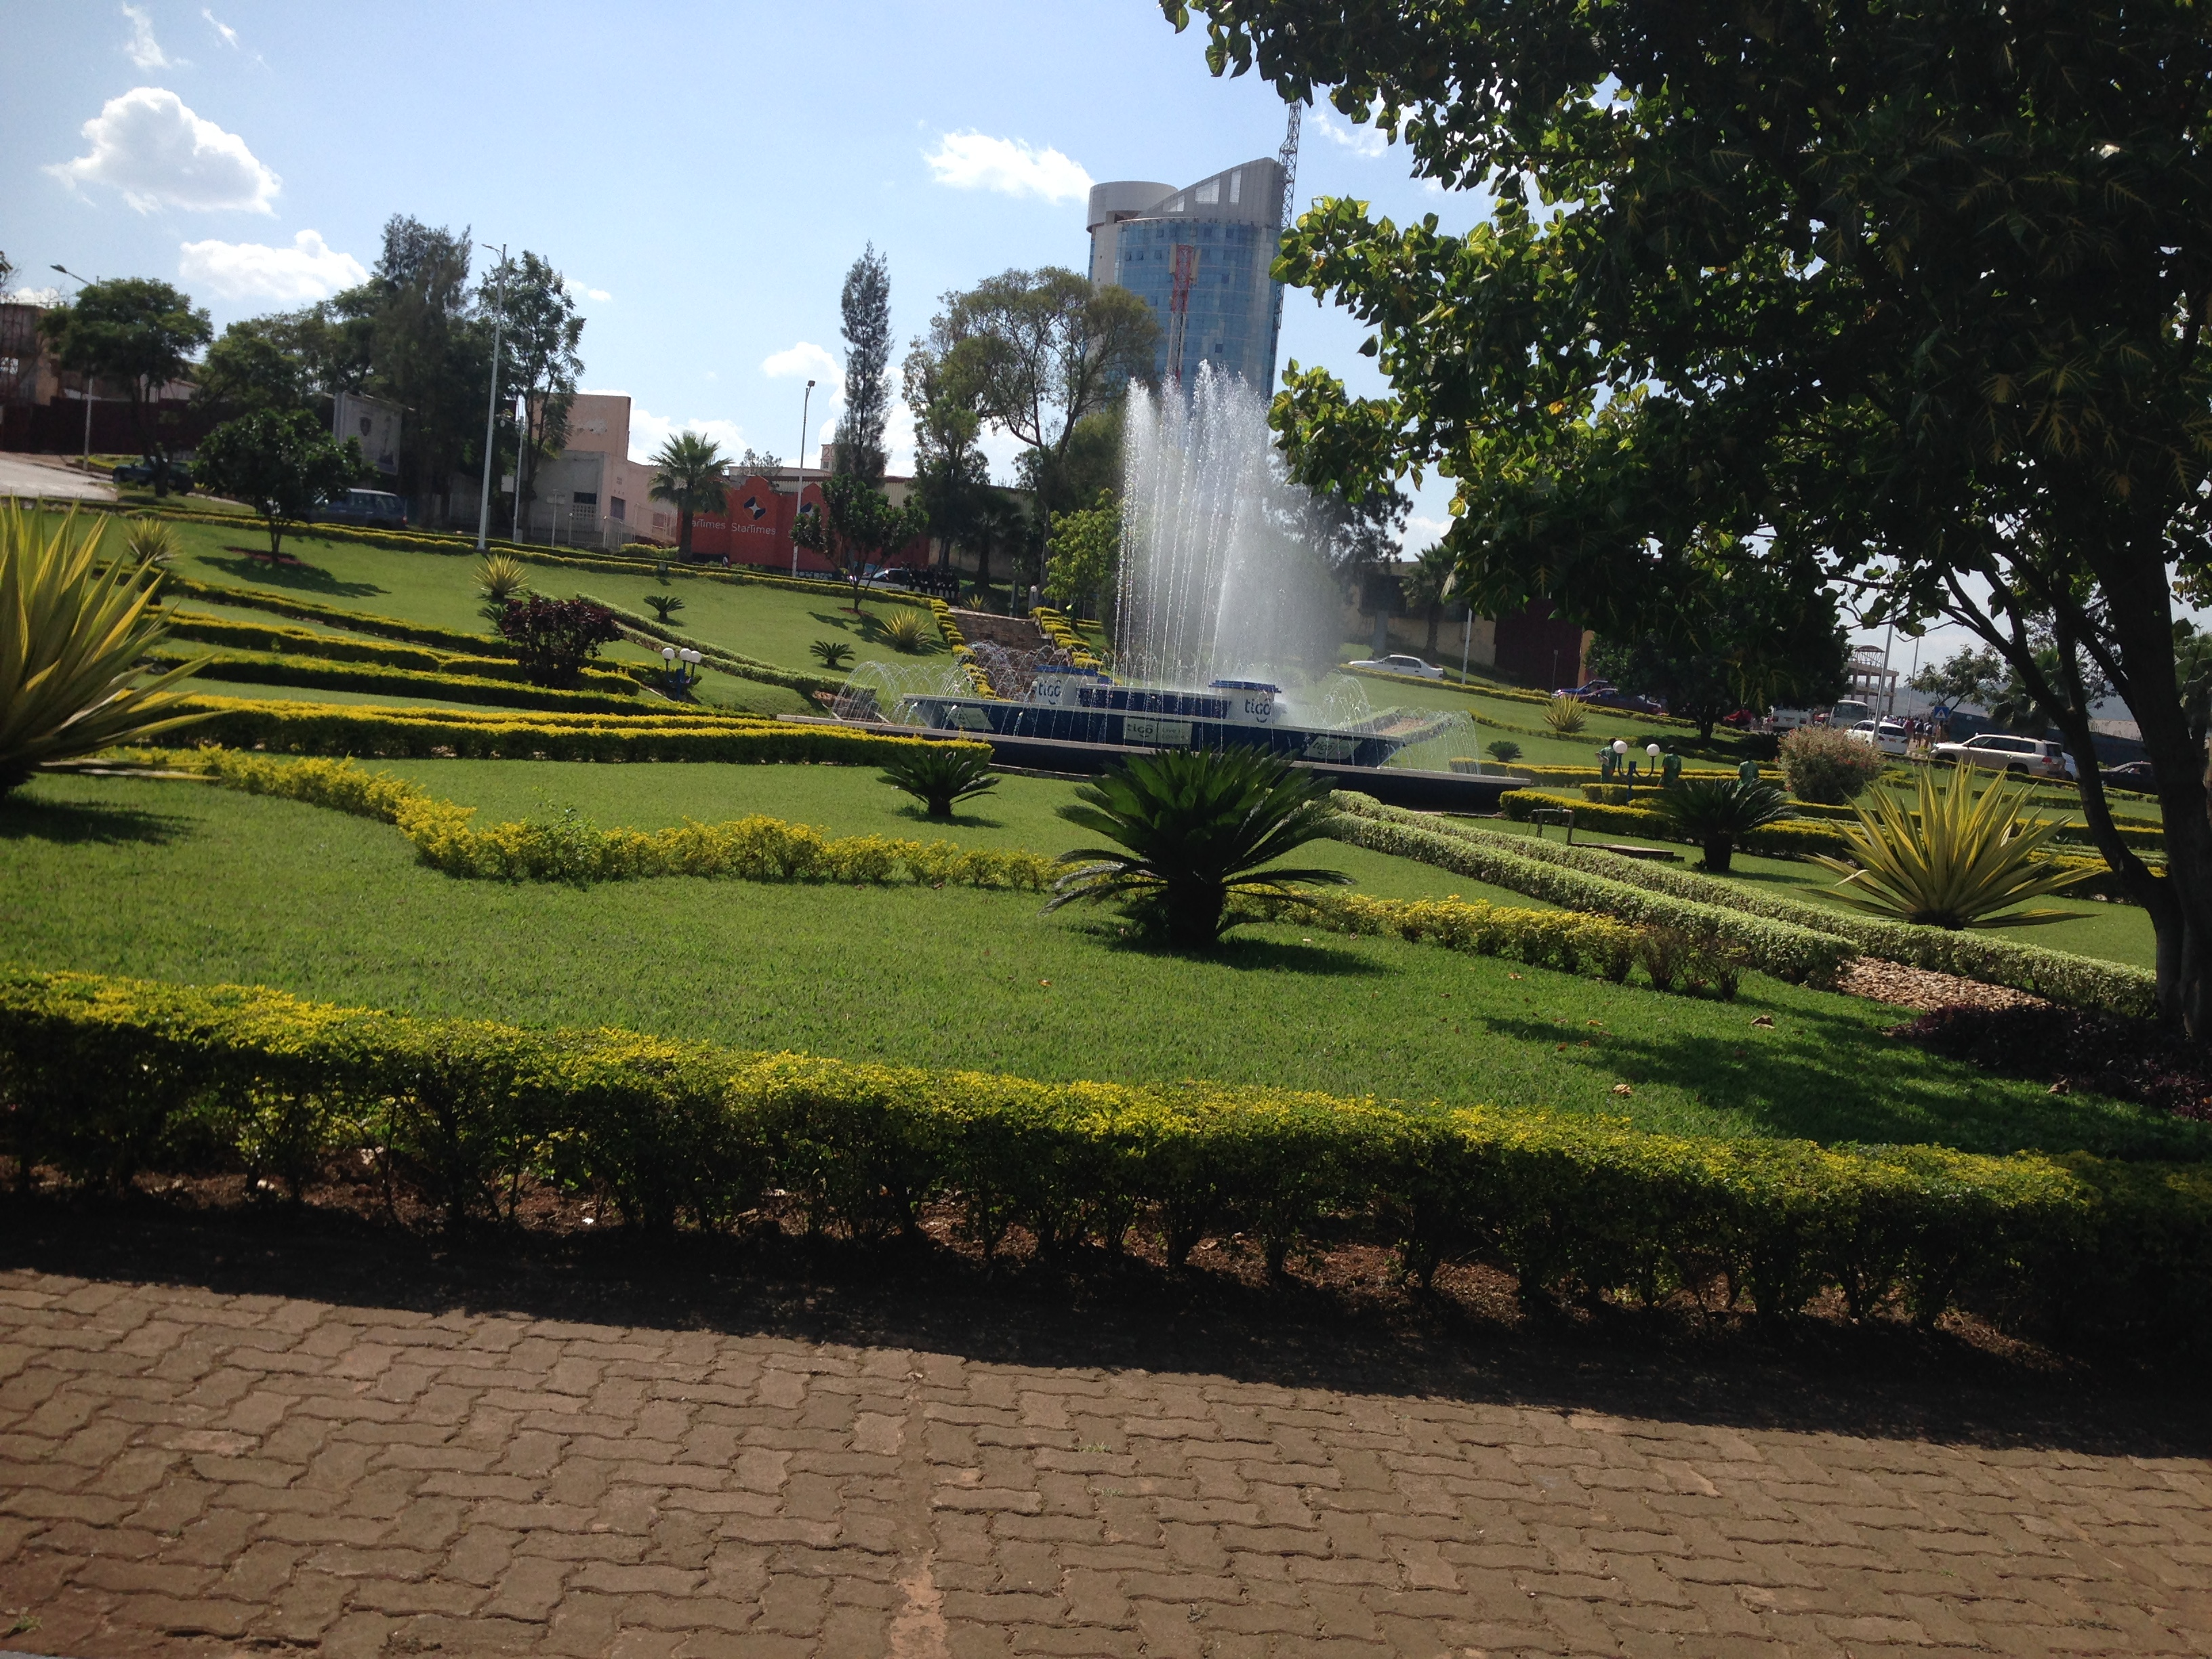 Entebbe Hotels, Camp sites and Entebbe Lodges in Town